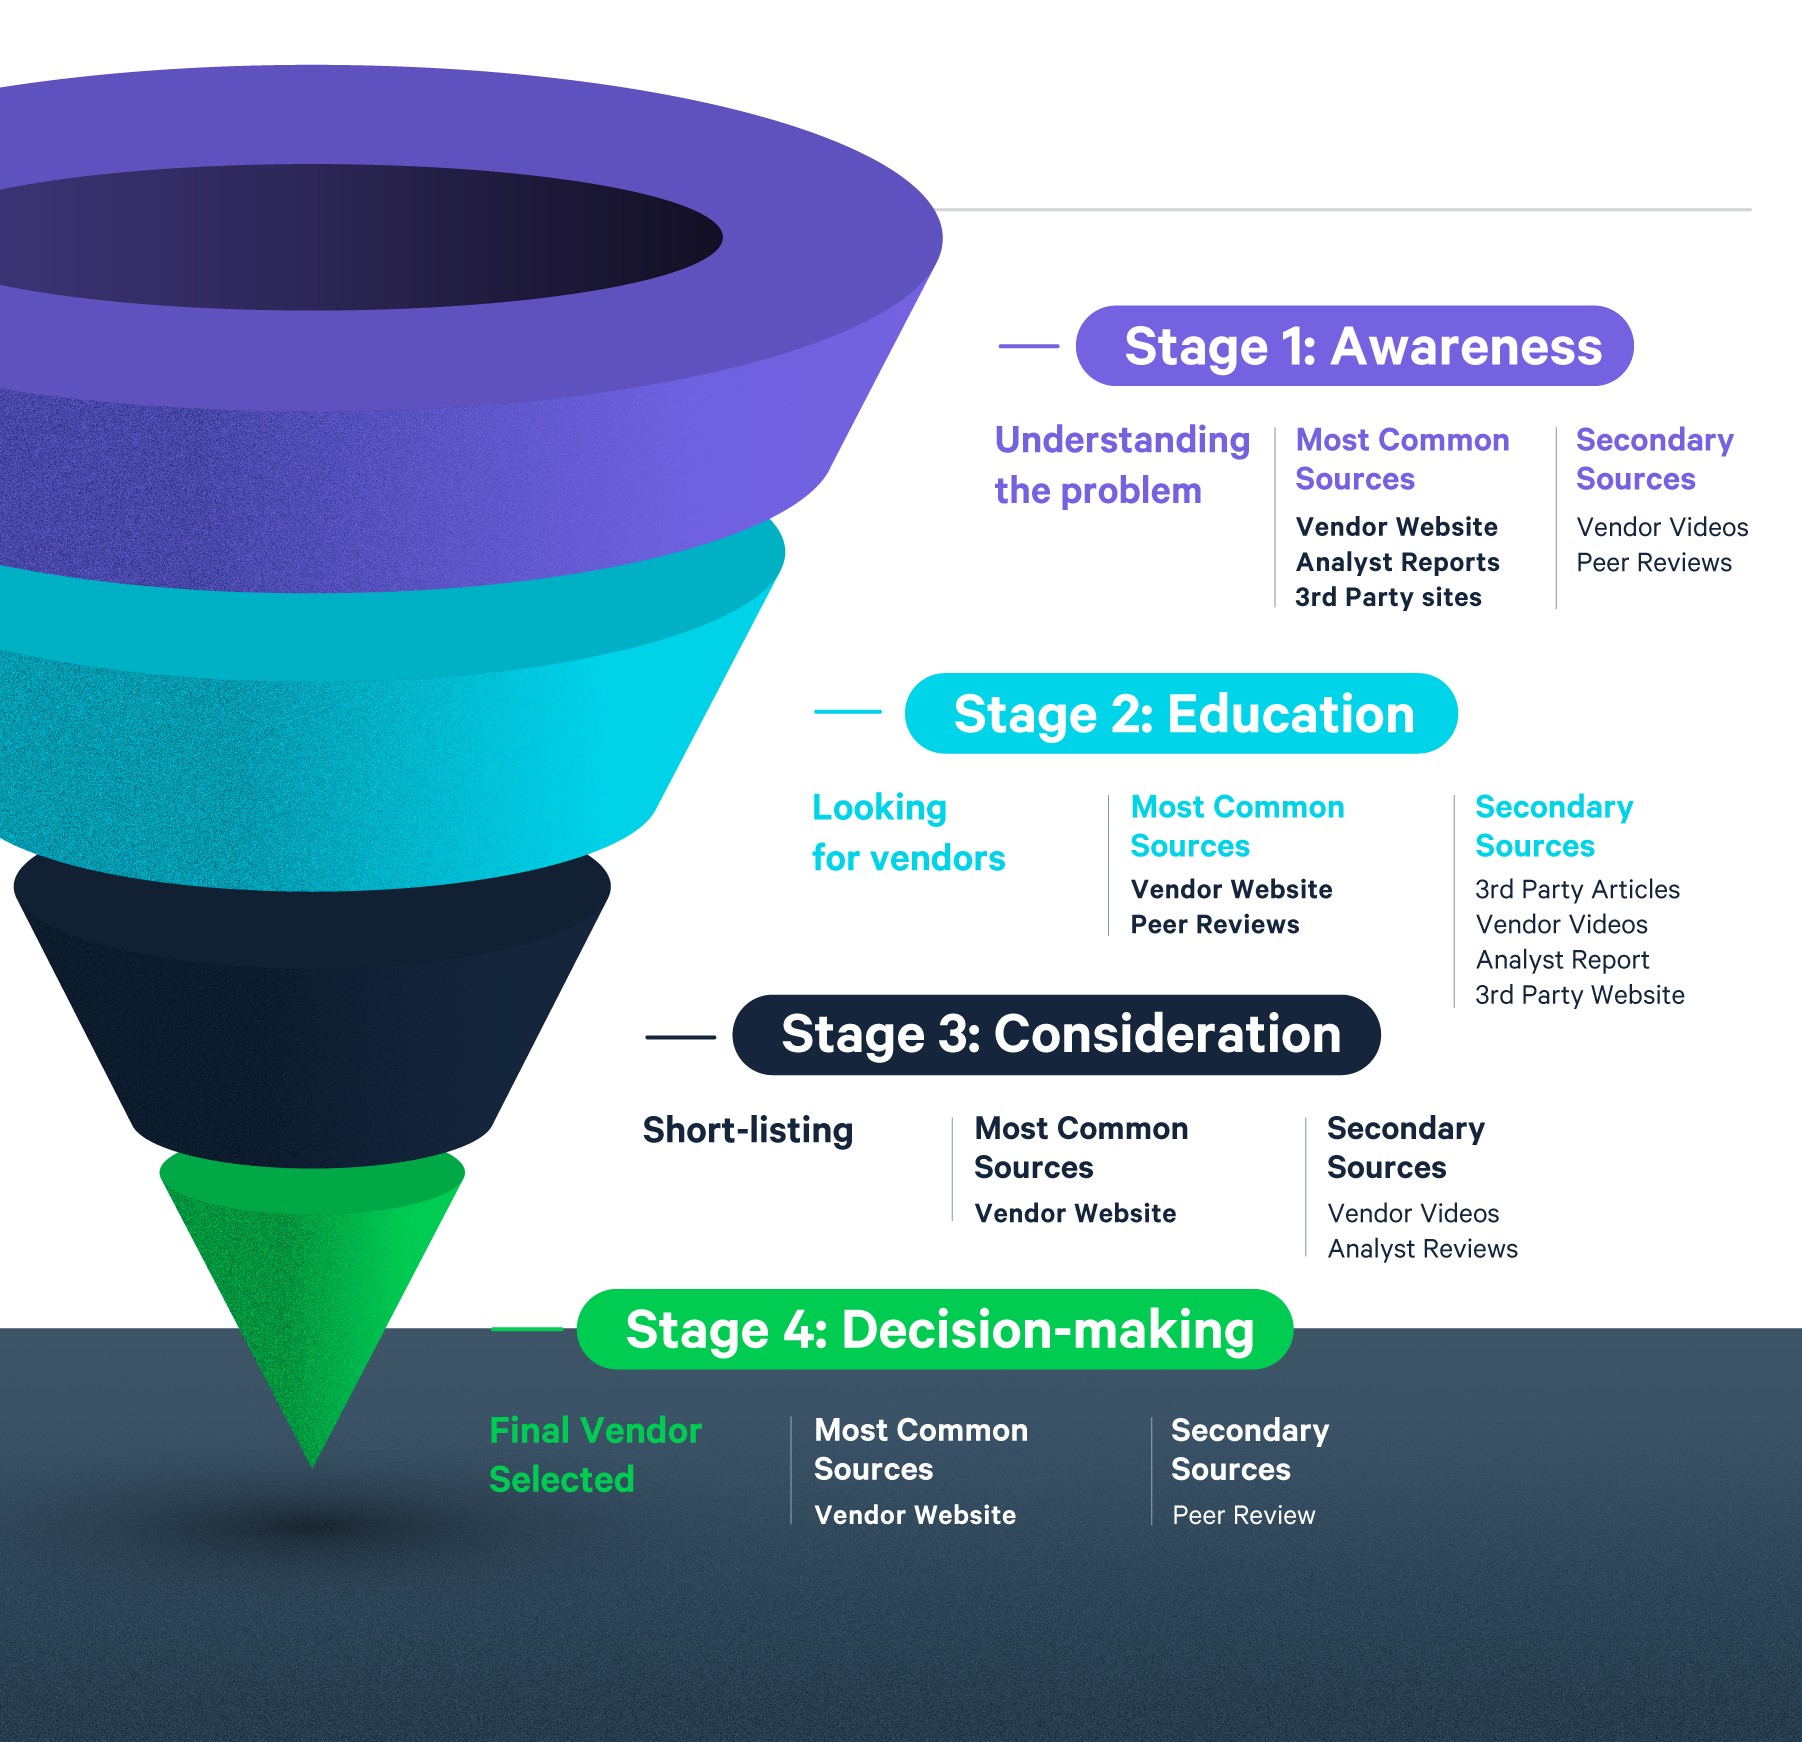 Most Useful Types of Content for Purchase Decision